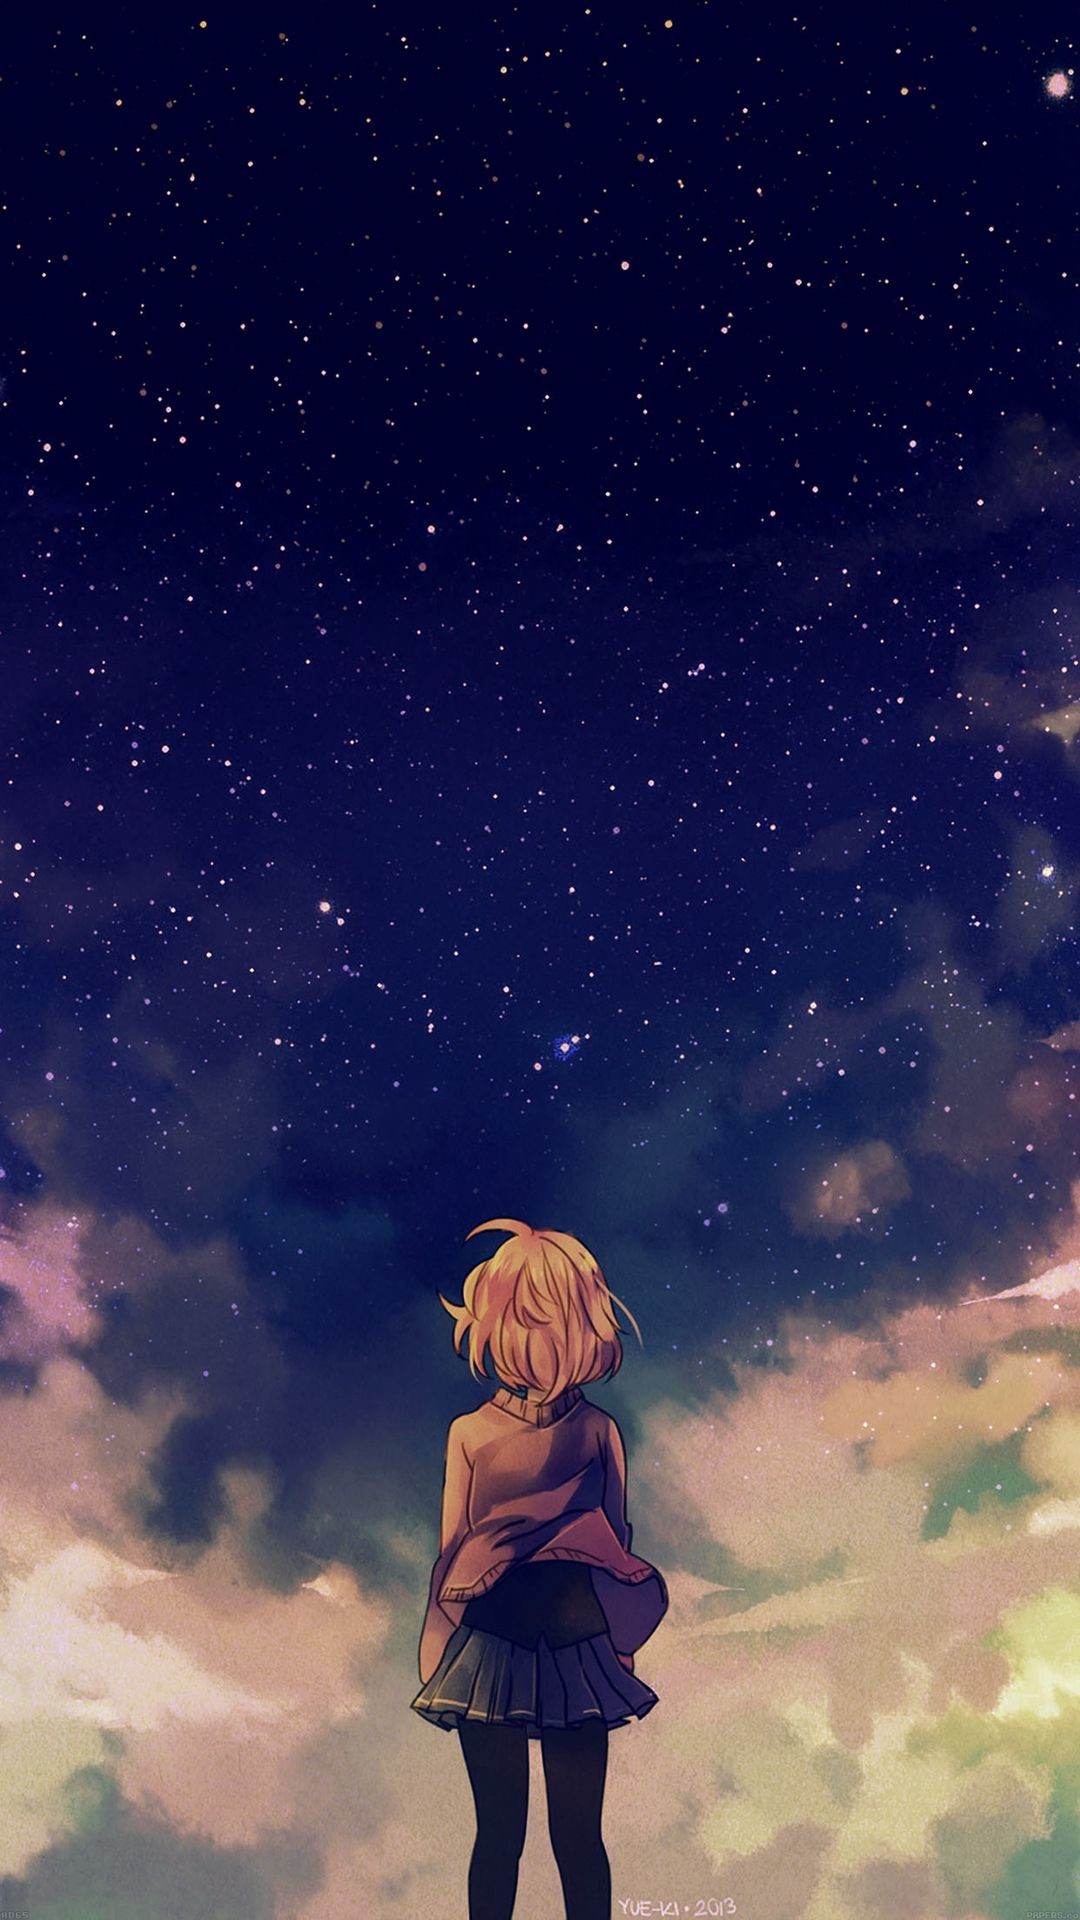 cool anime iphone wallpaper 1080x1920 windows 10